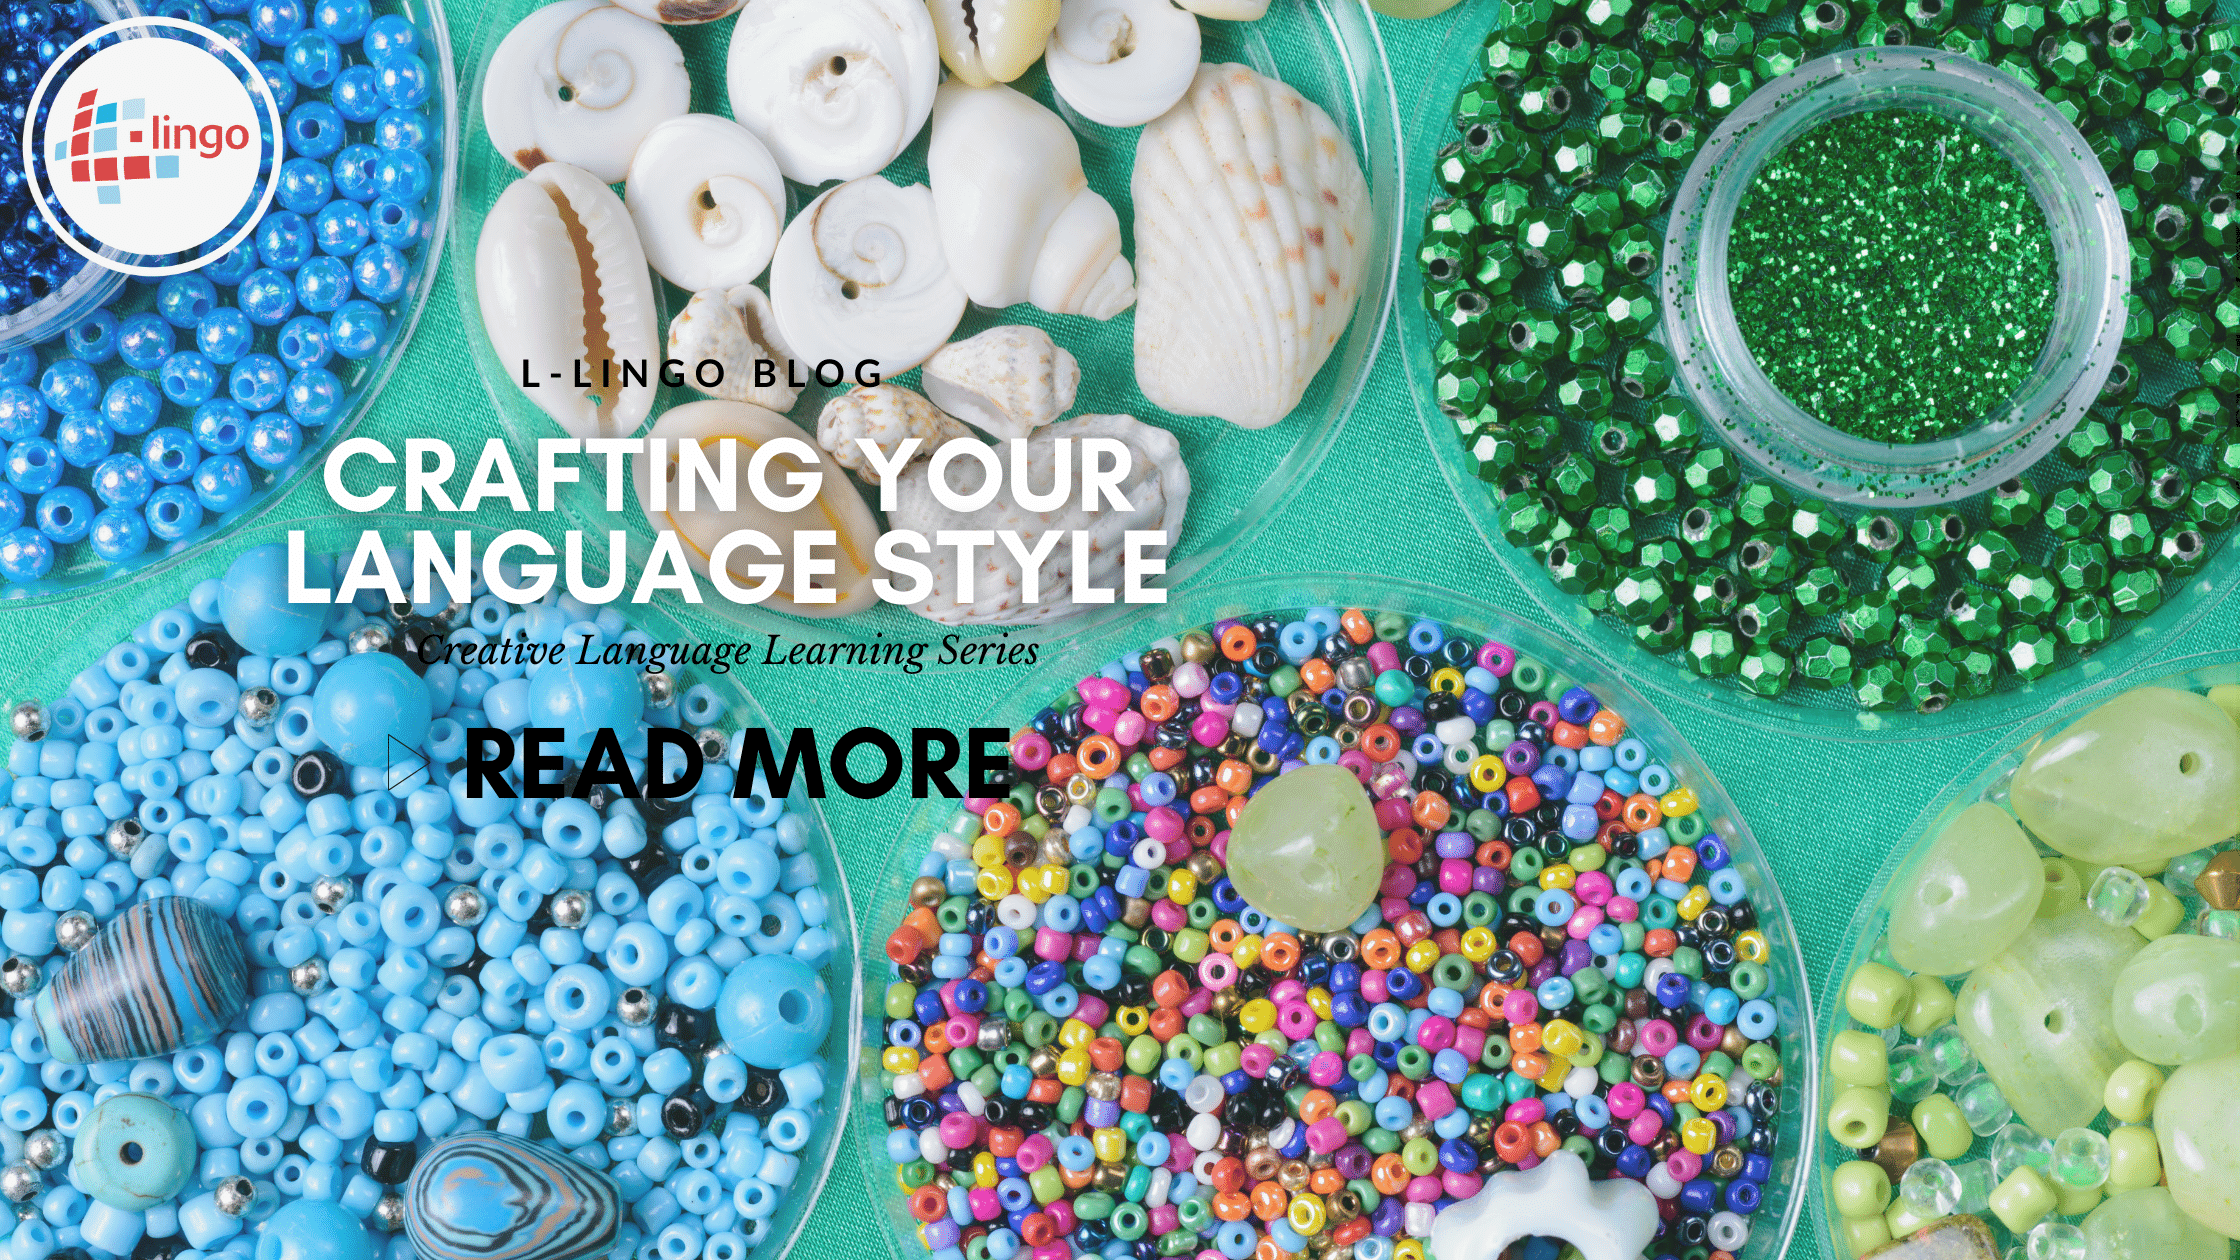 CRAFTING YOUR LANGUAGE STYLE L-LINGO BLOG